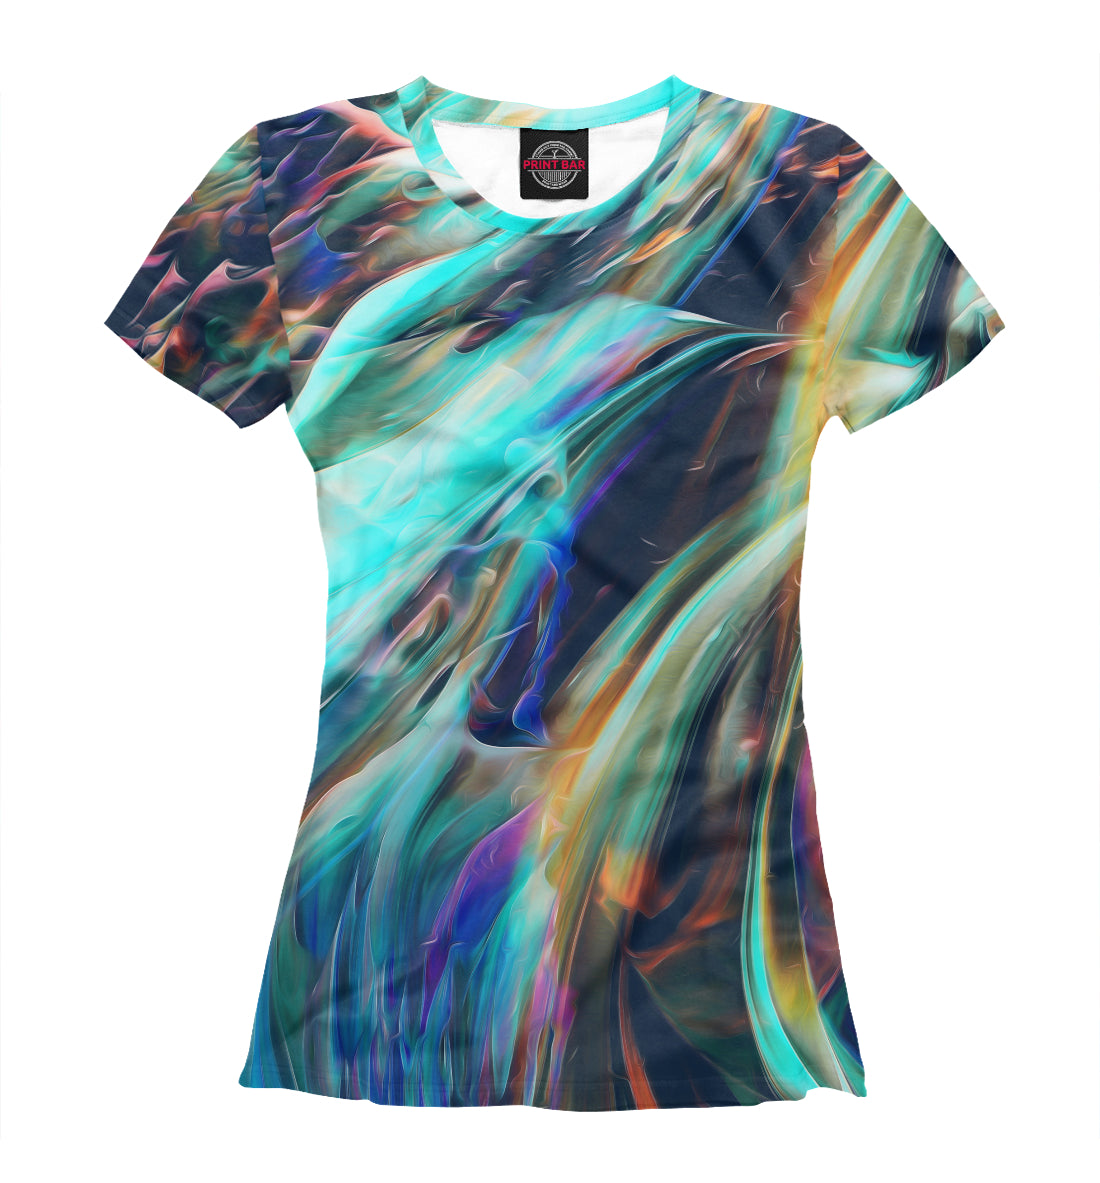 T-shirt abstract waves | ABS-512858-fut-1